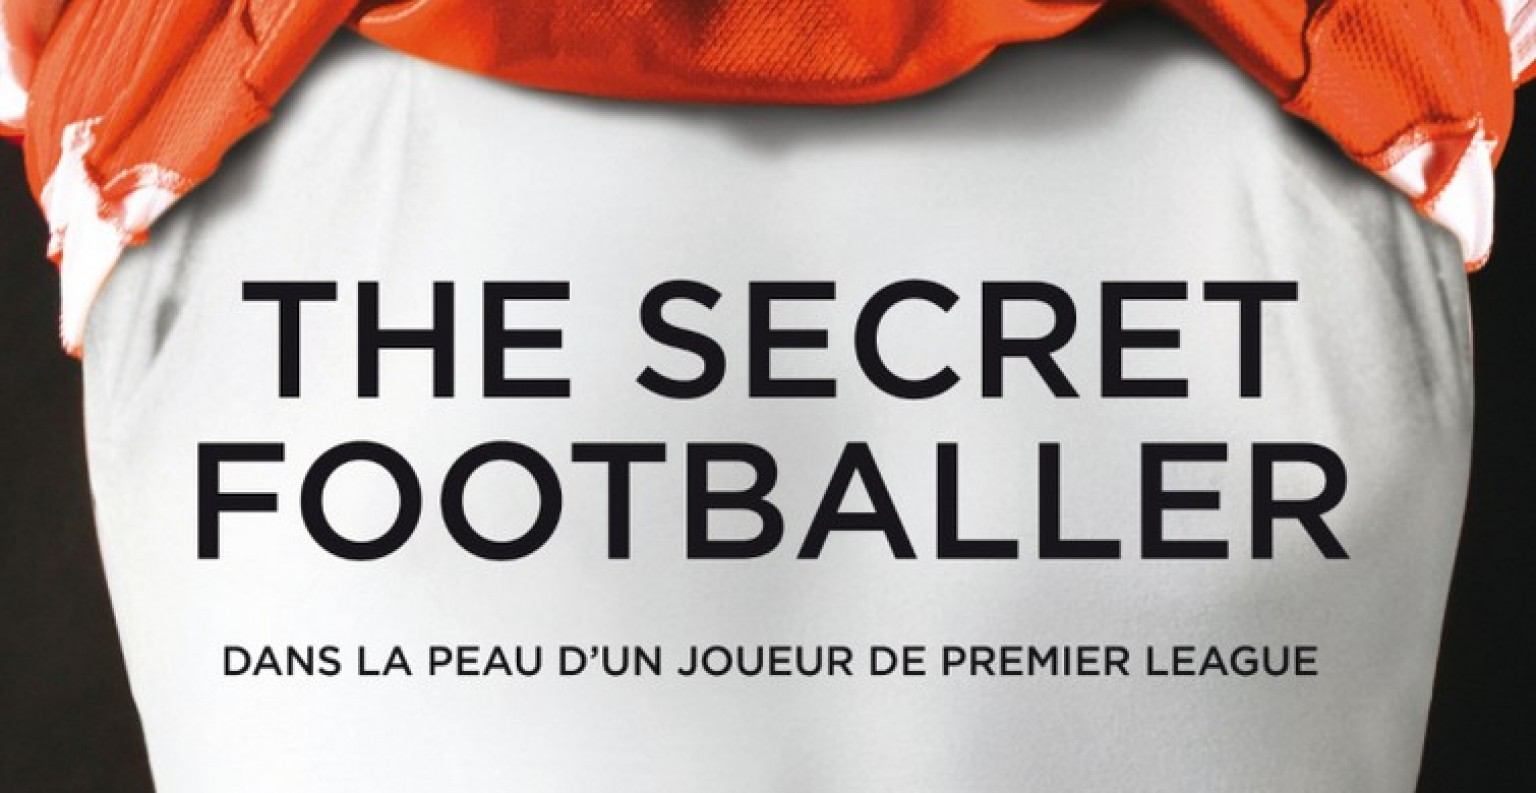 The Secret Footballer